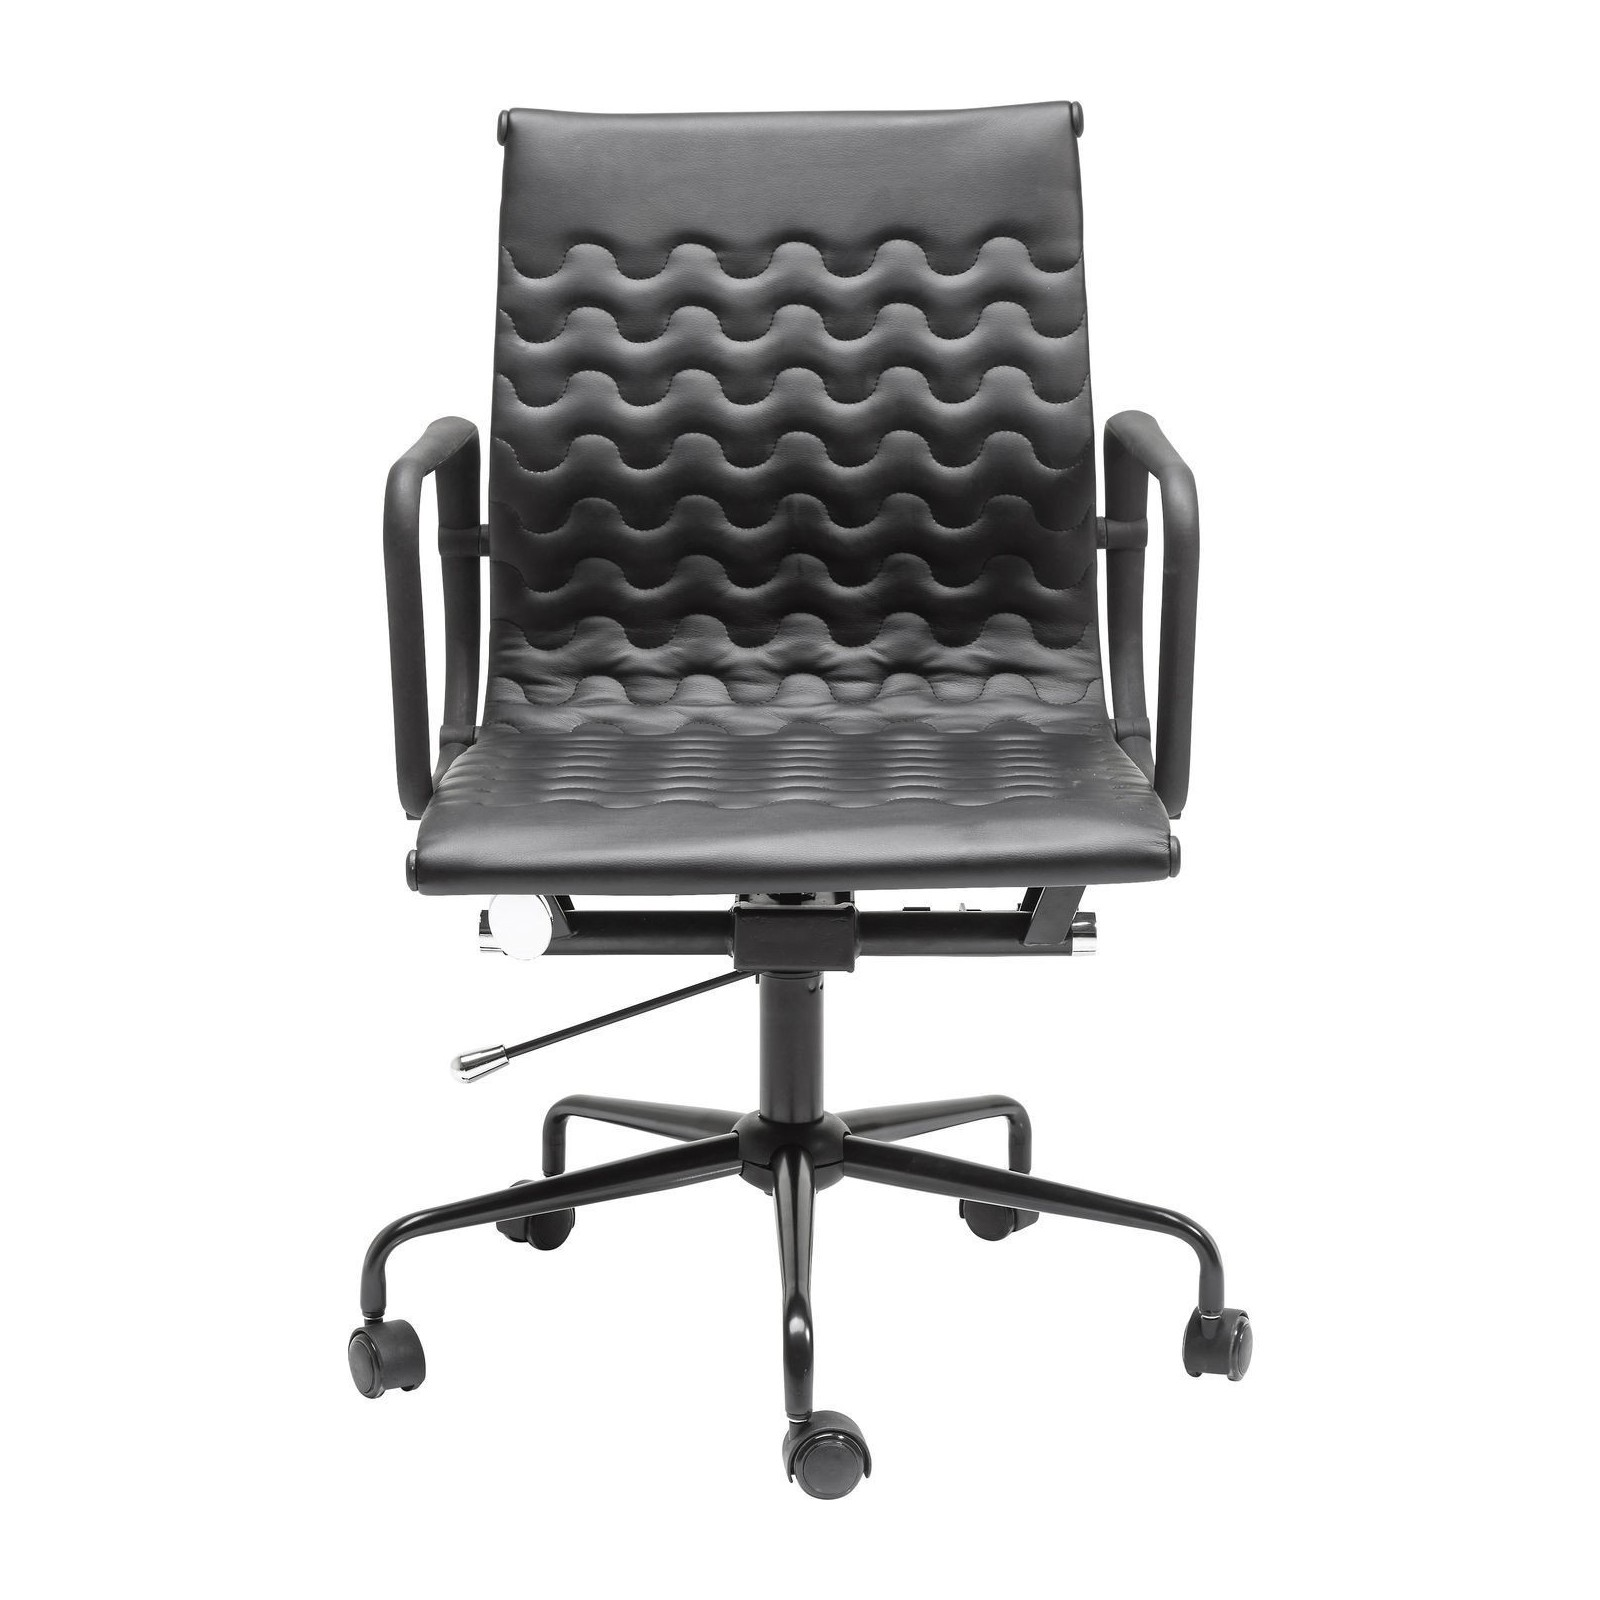 Chaise de bureau moderne noire wave kare design for Chaise de bureau design